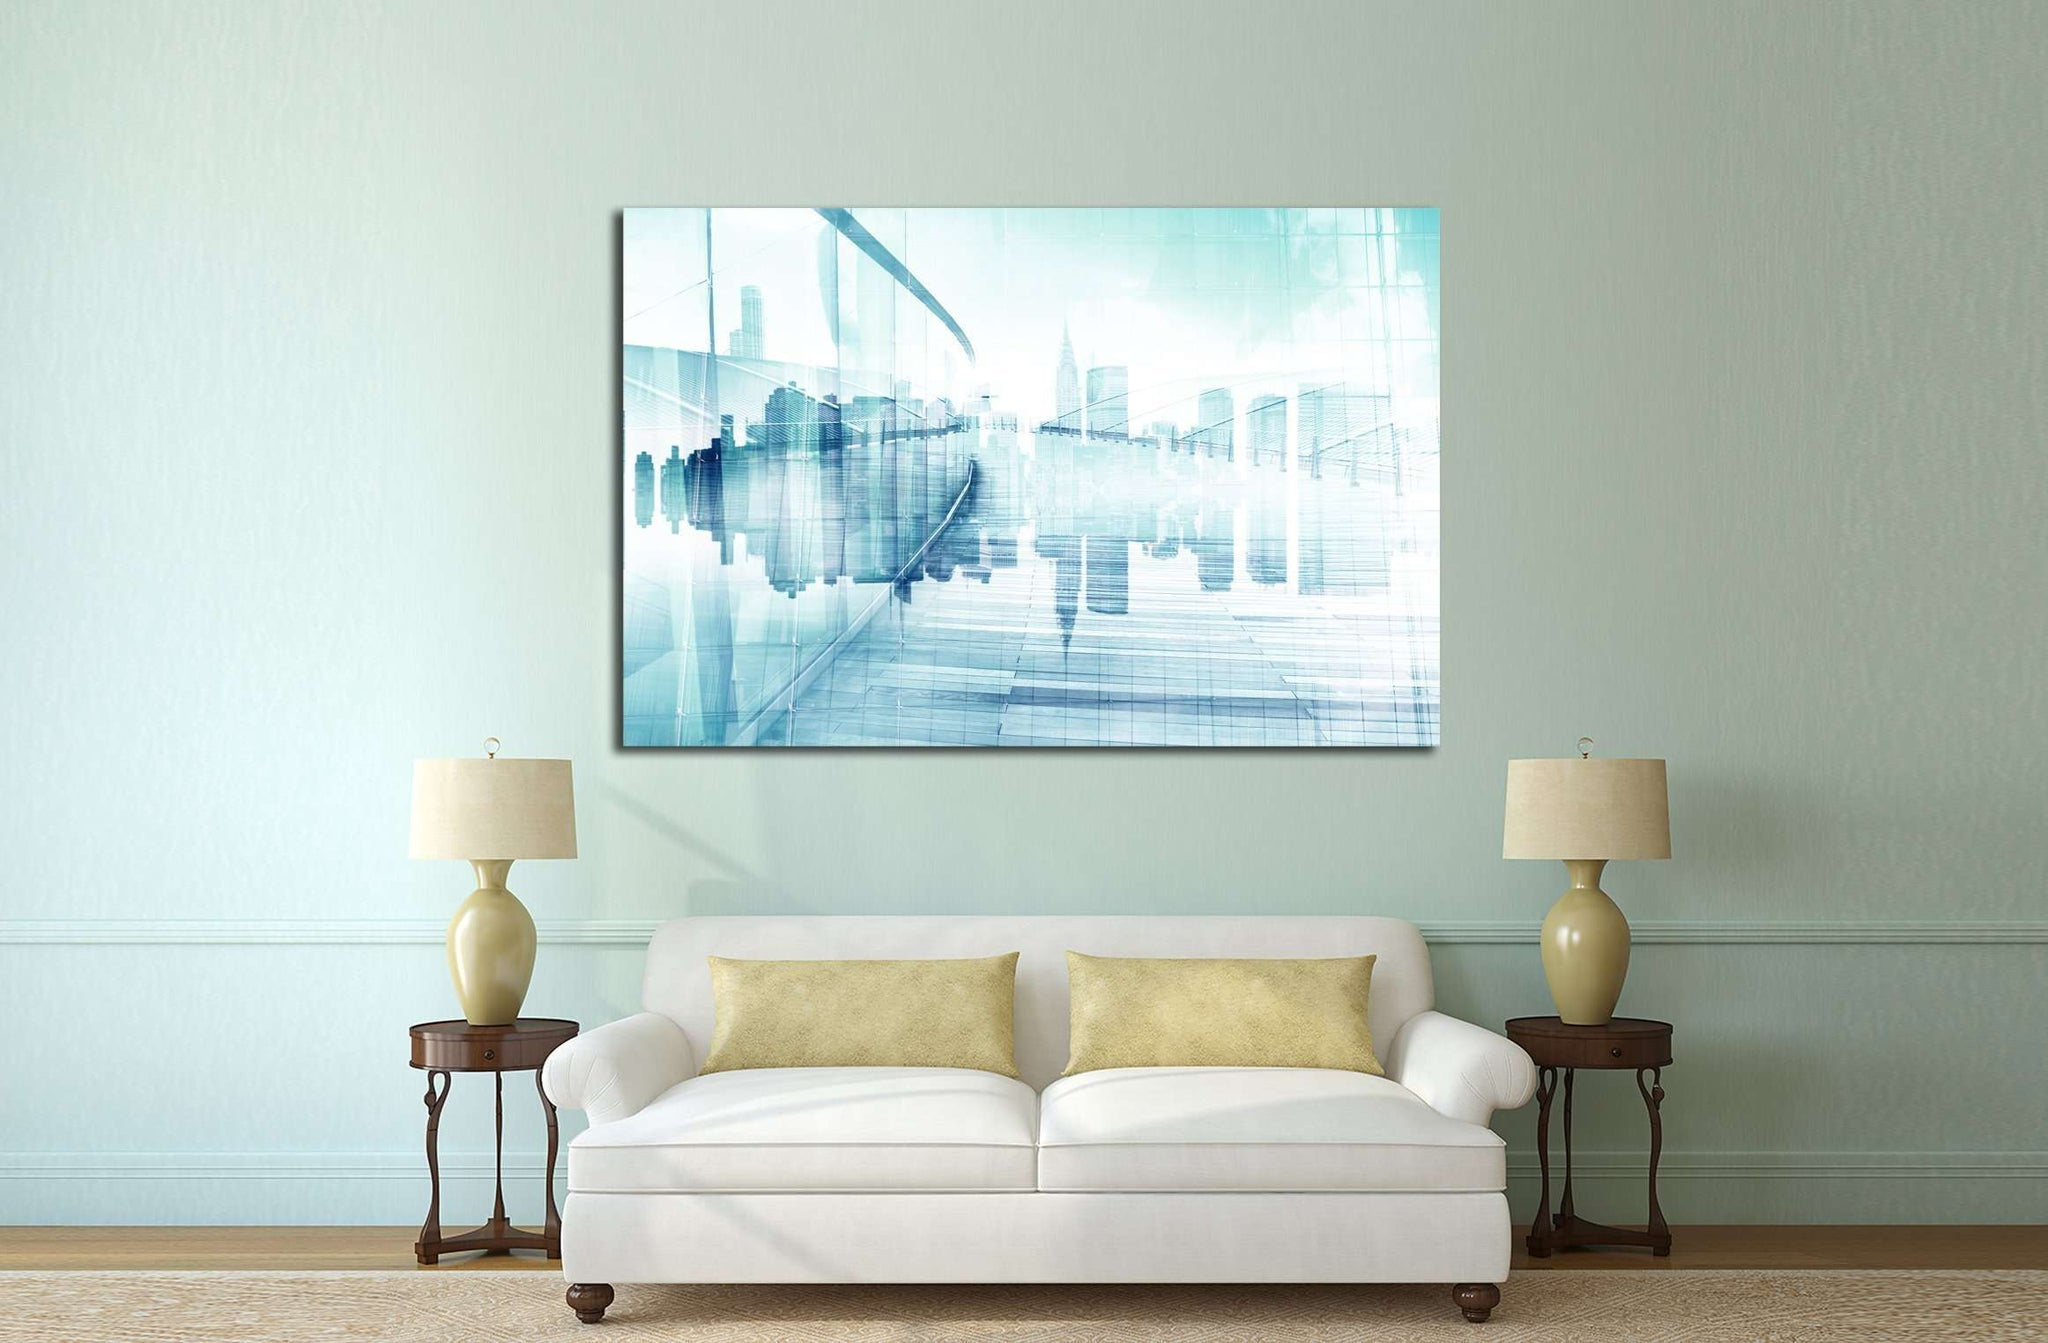 Abstract View of Urban Scene and Skyscrapers №2545 Ready to Hang Canvas Print